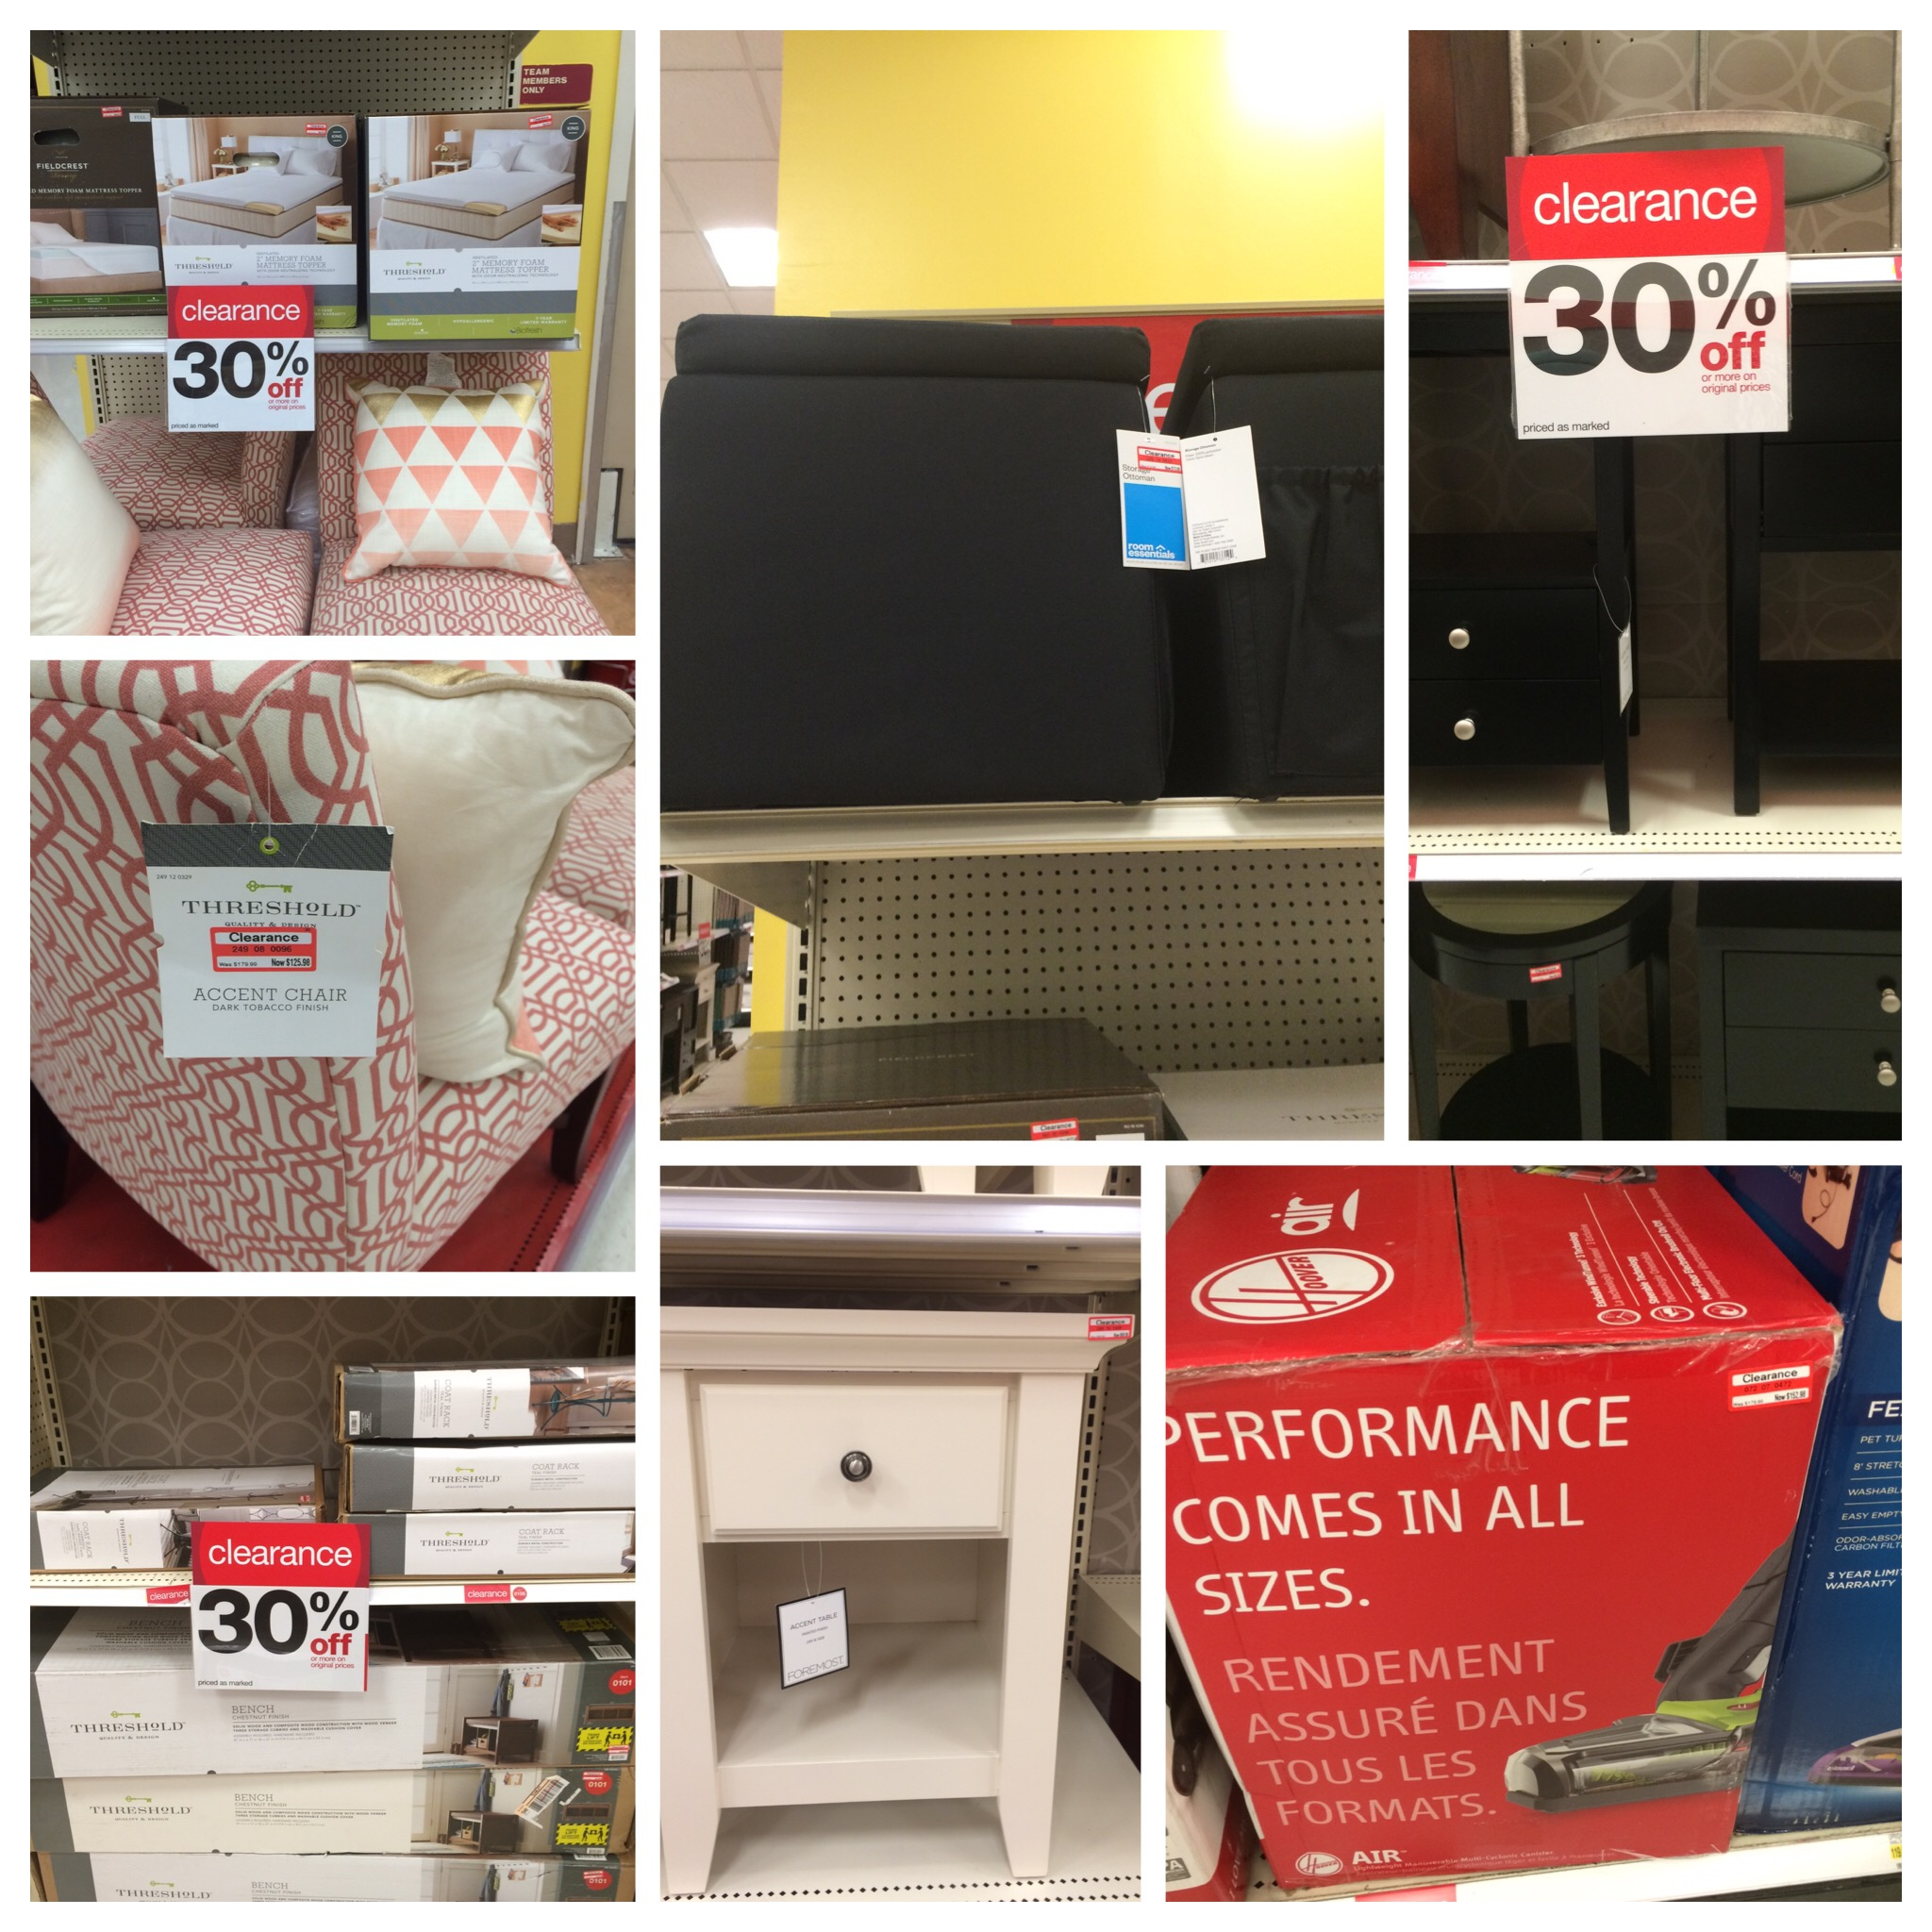 Target Extra Finds and Furniture Clearance: $.33 Neutrogena Soap, $.44 Nivea Shave Gel & More | Passionate Penny Pincher